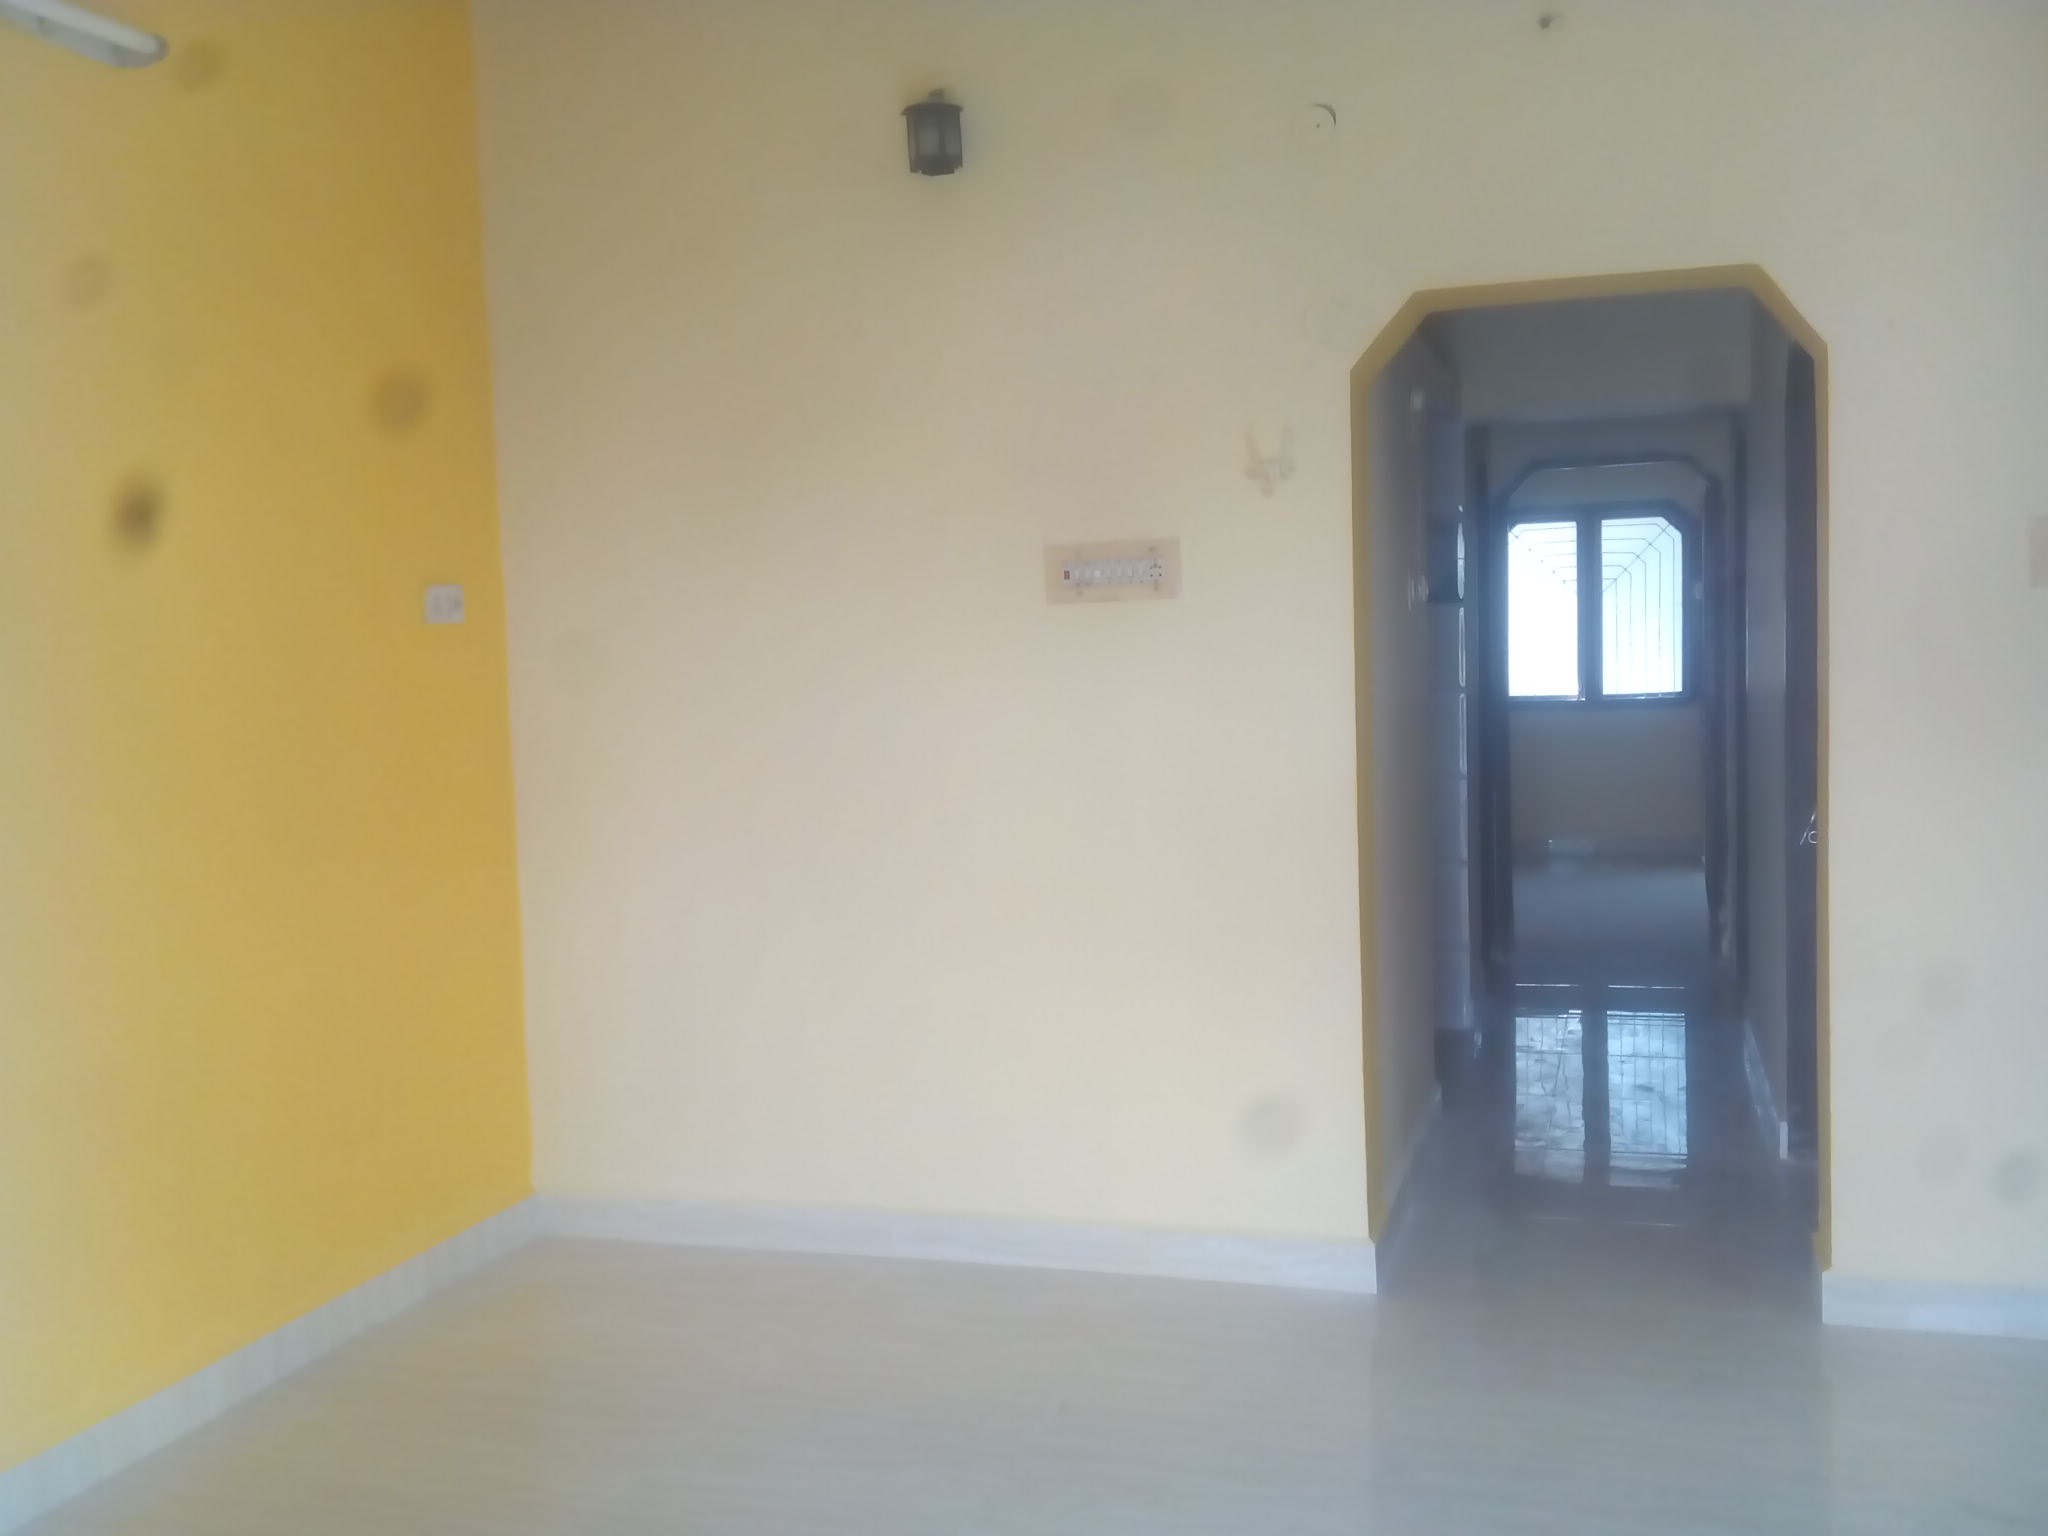 2bhk flat on sahakar nagar  for rent 8000 with modular kitchan